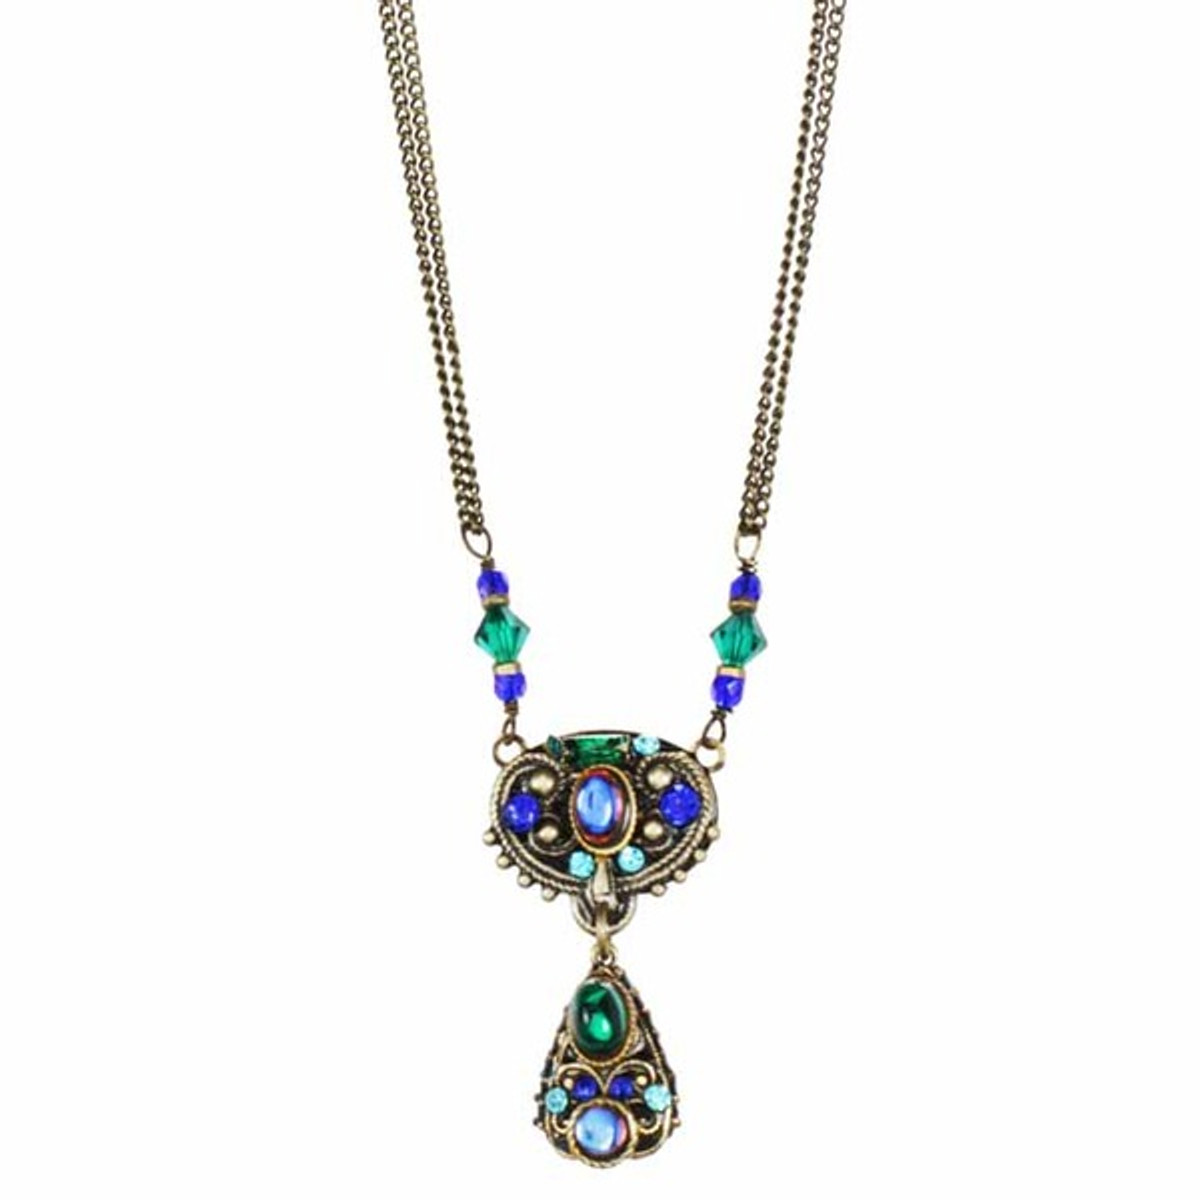 Peacock Necklace - Michal Golan Jewelry